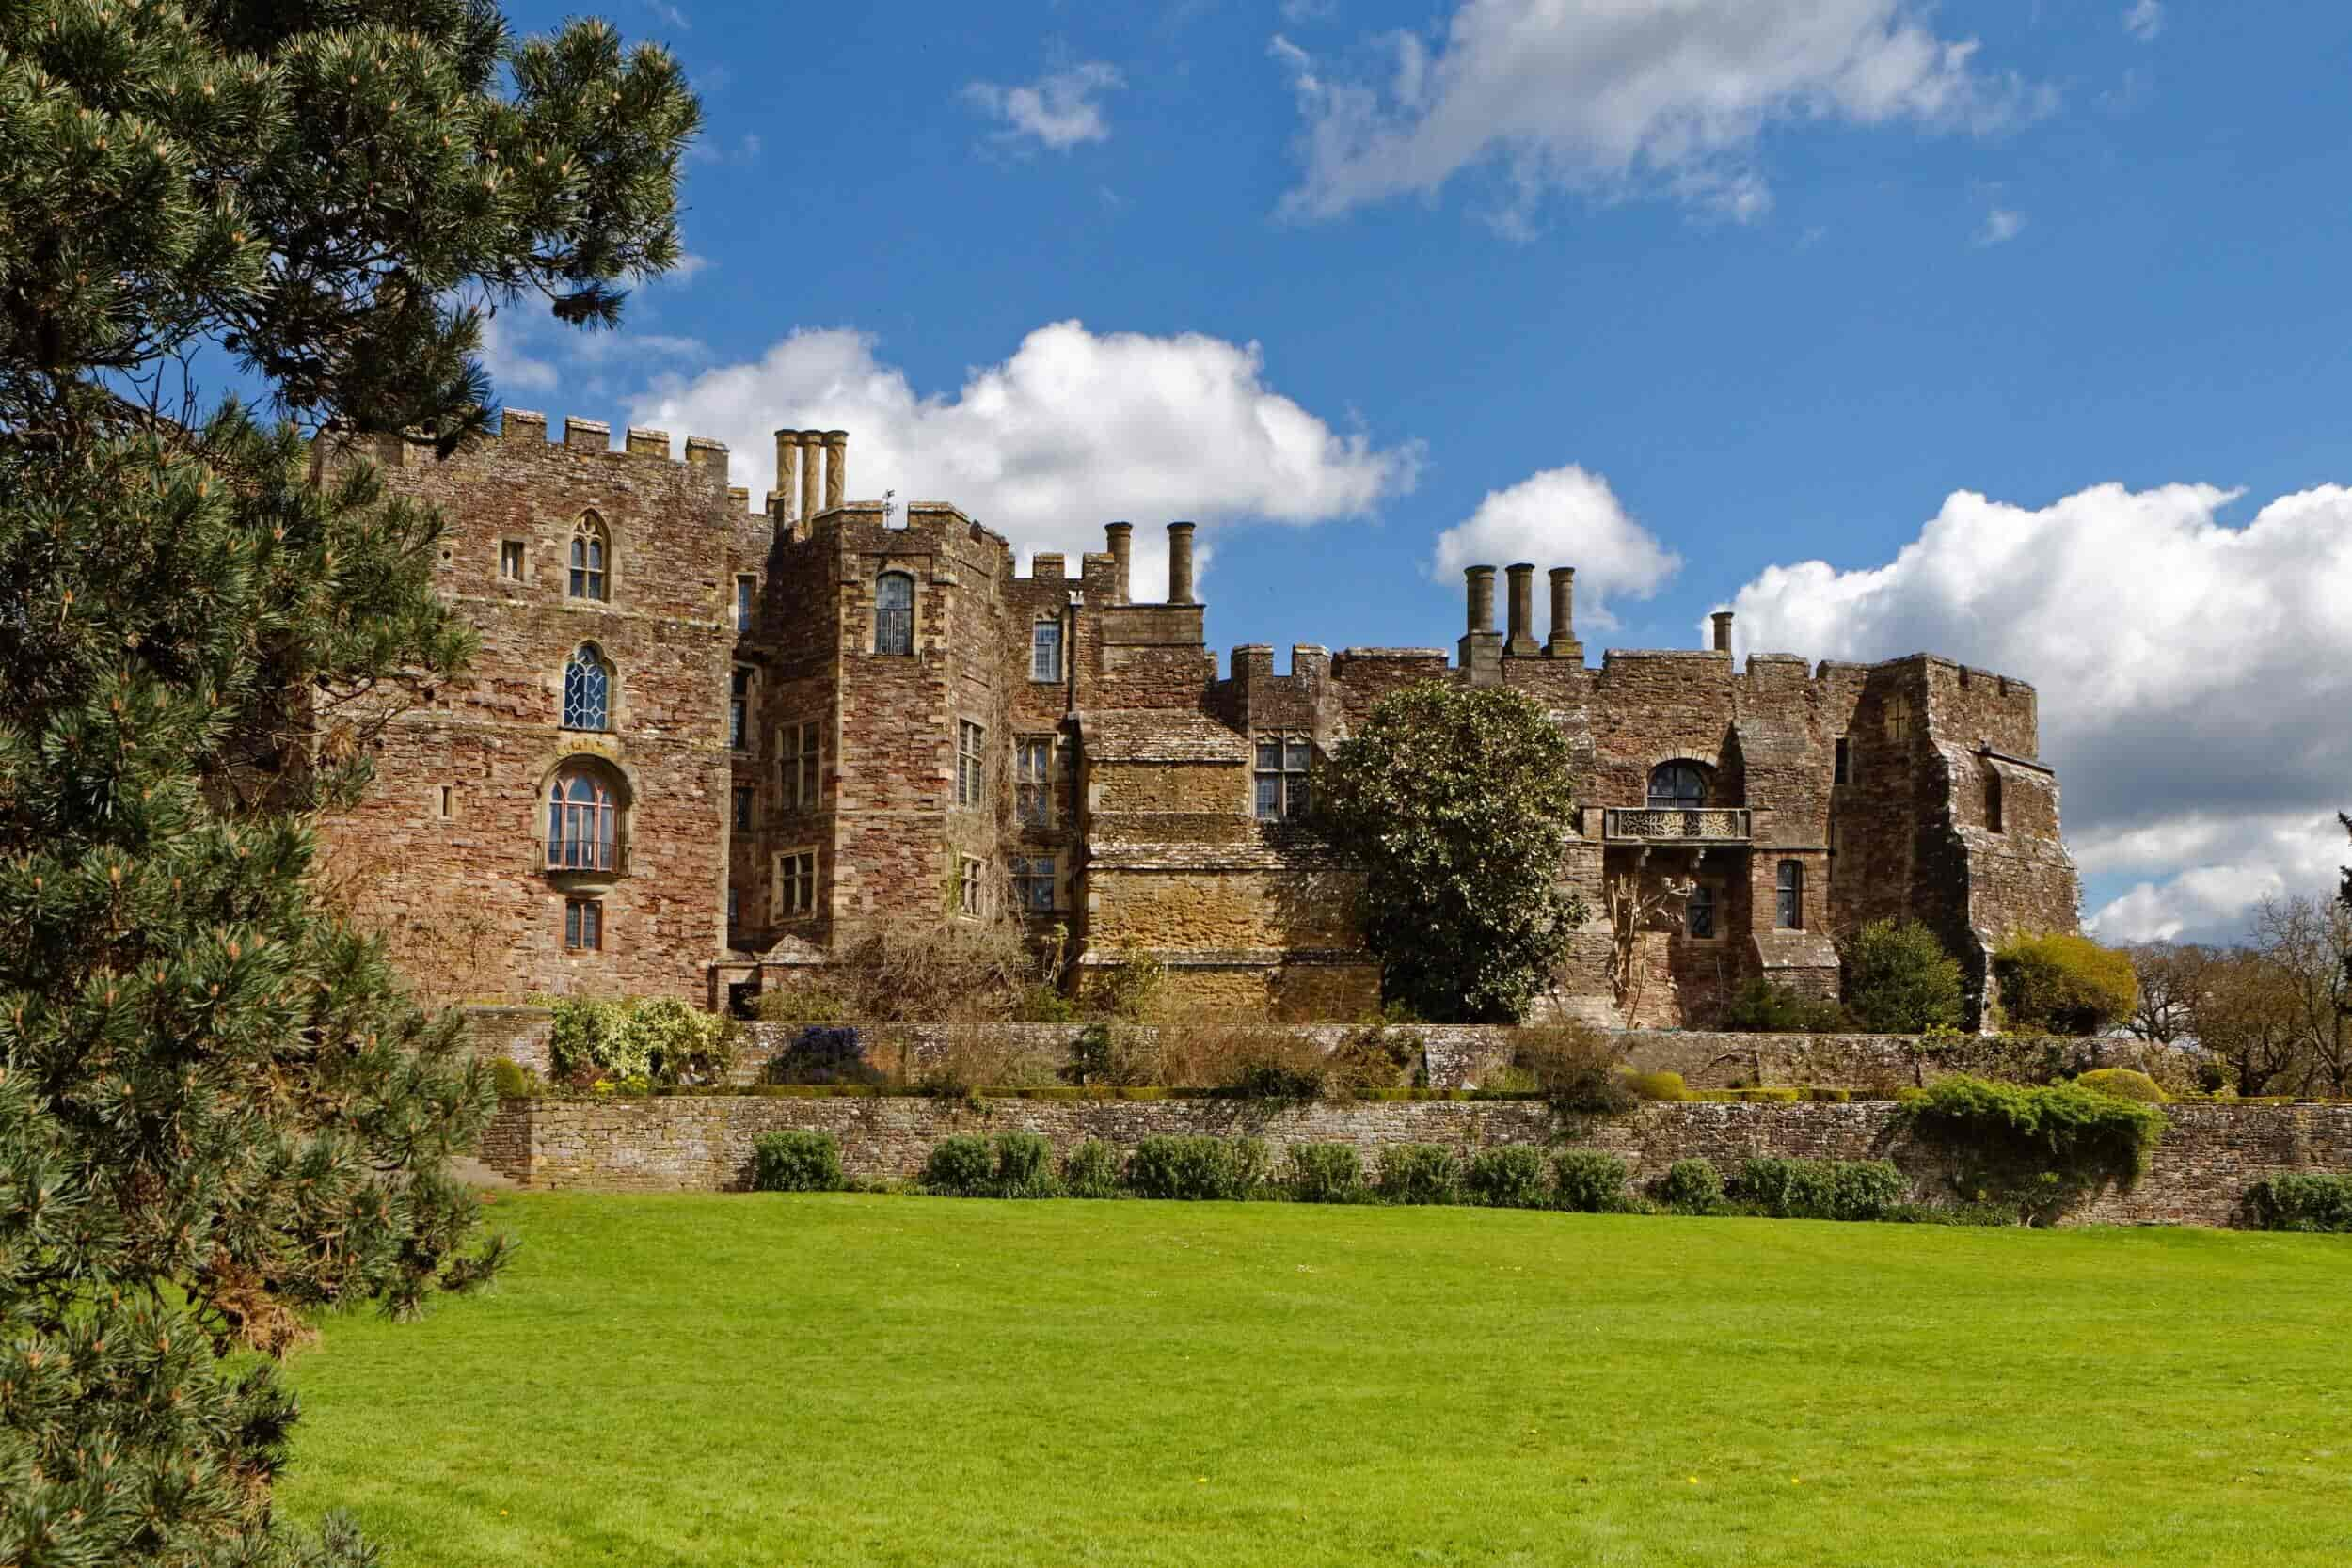 The exterior of Berkeley Castle.